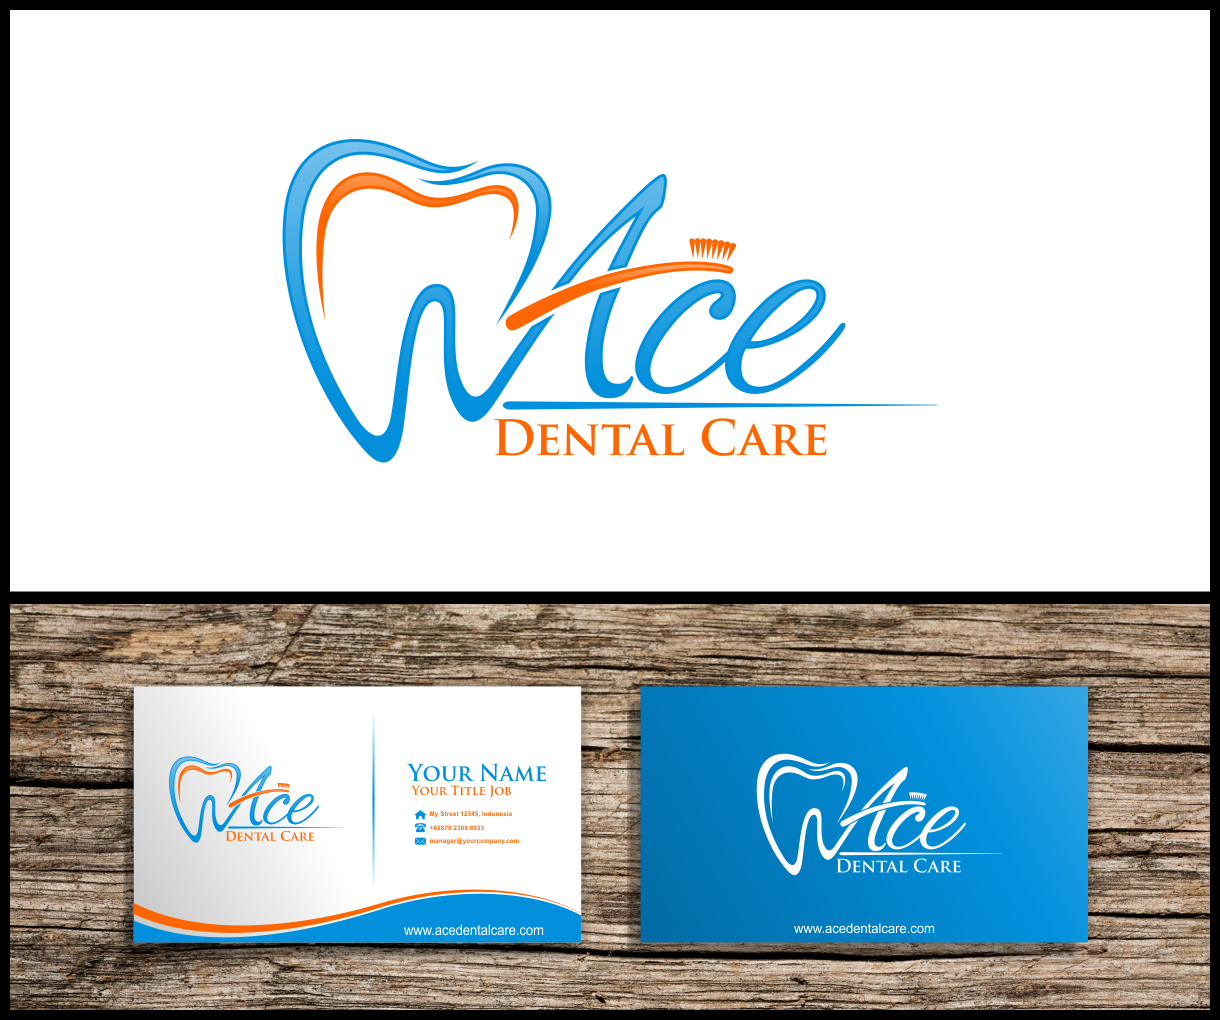 Create a pleasant Logo that my Dental patients can easily associate to my practice